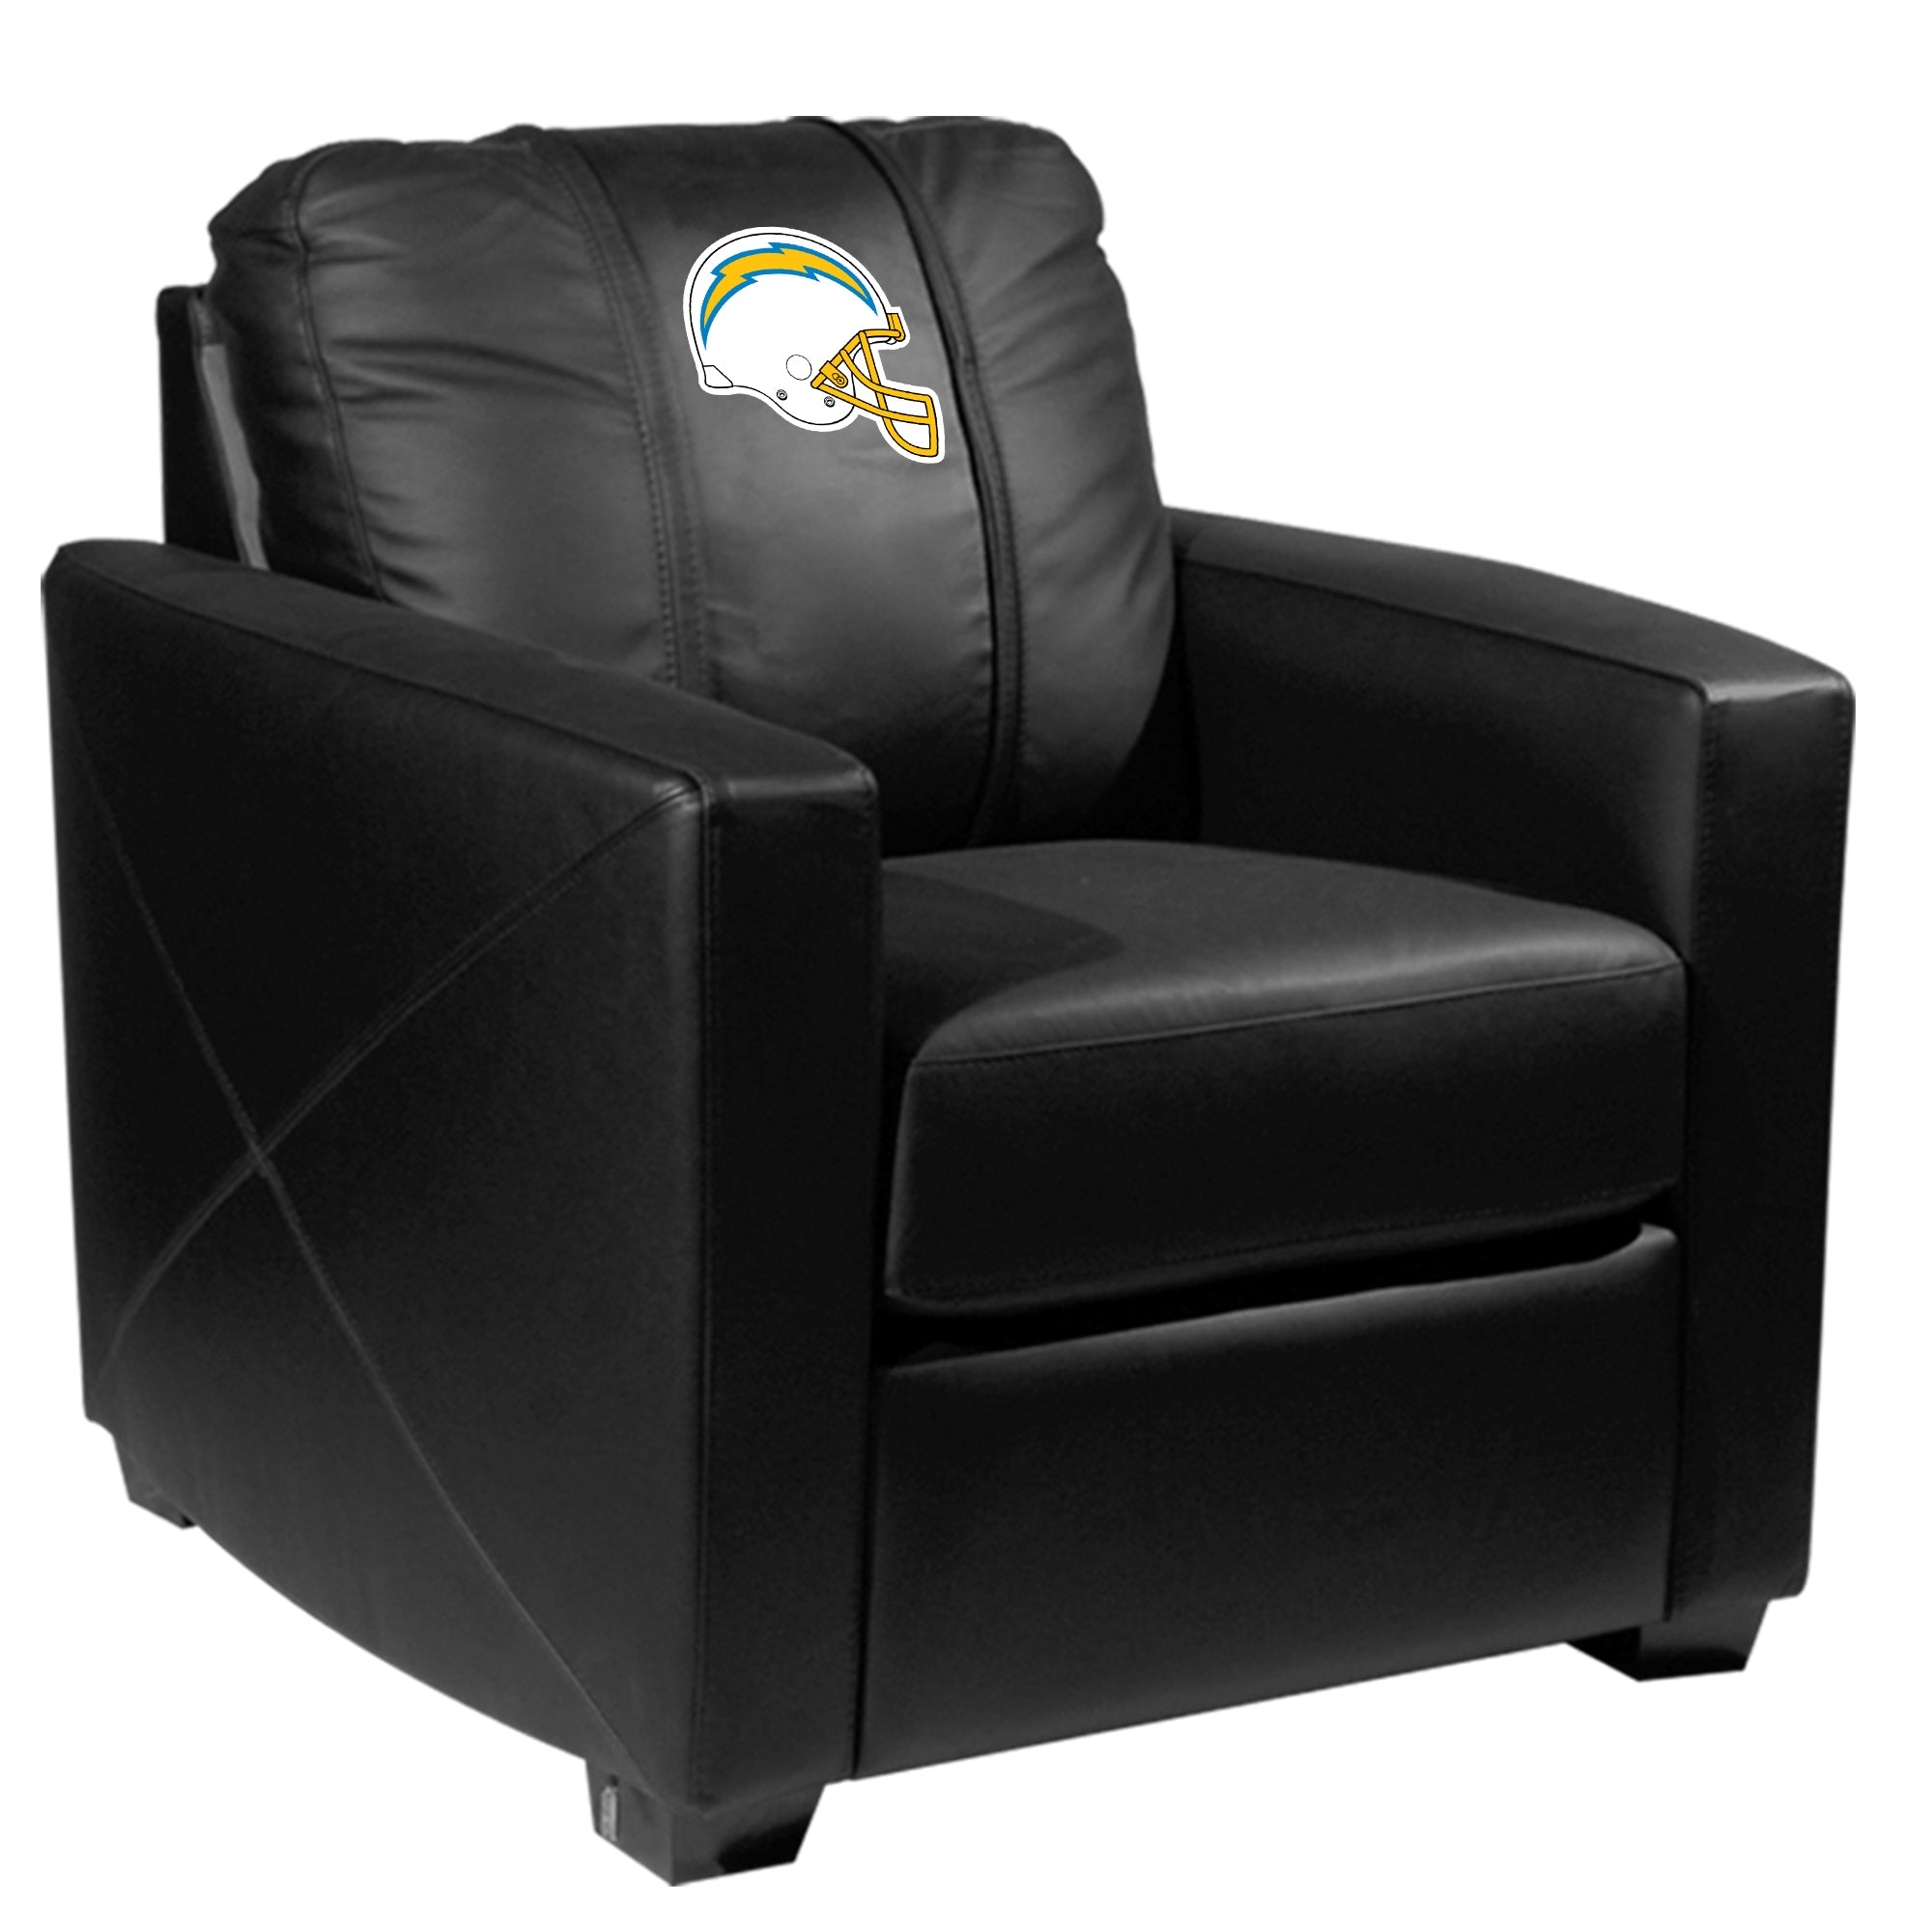 Silver Club Chair with  Los Angeles Chargers Helmet Logo